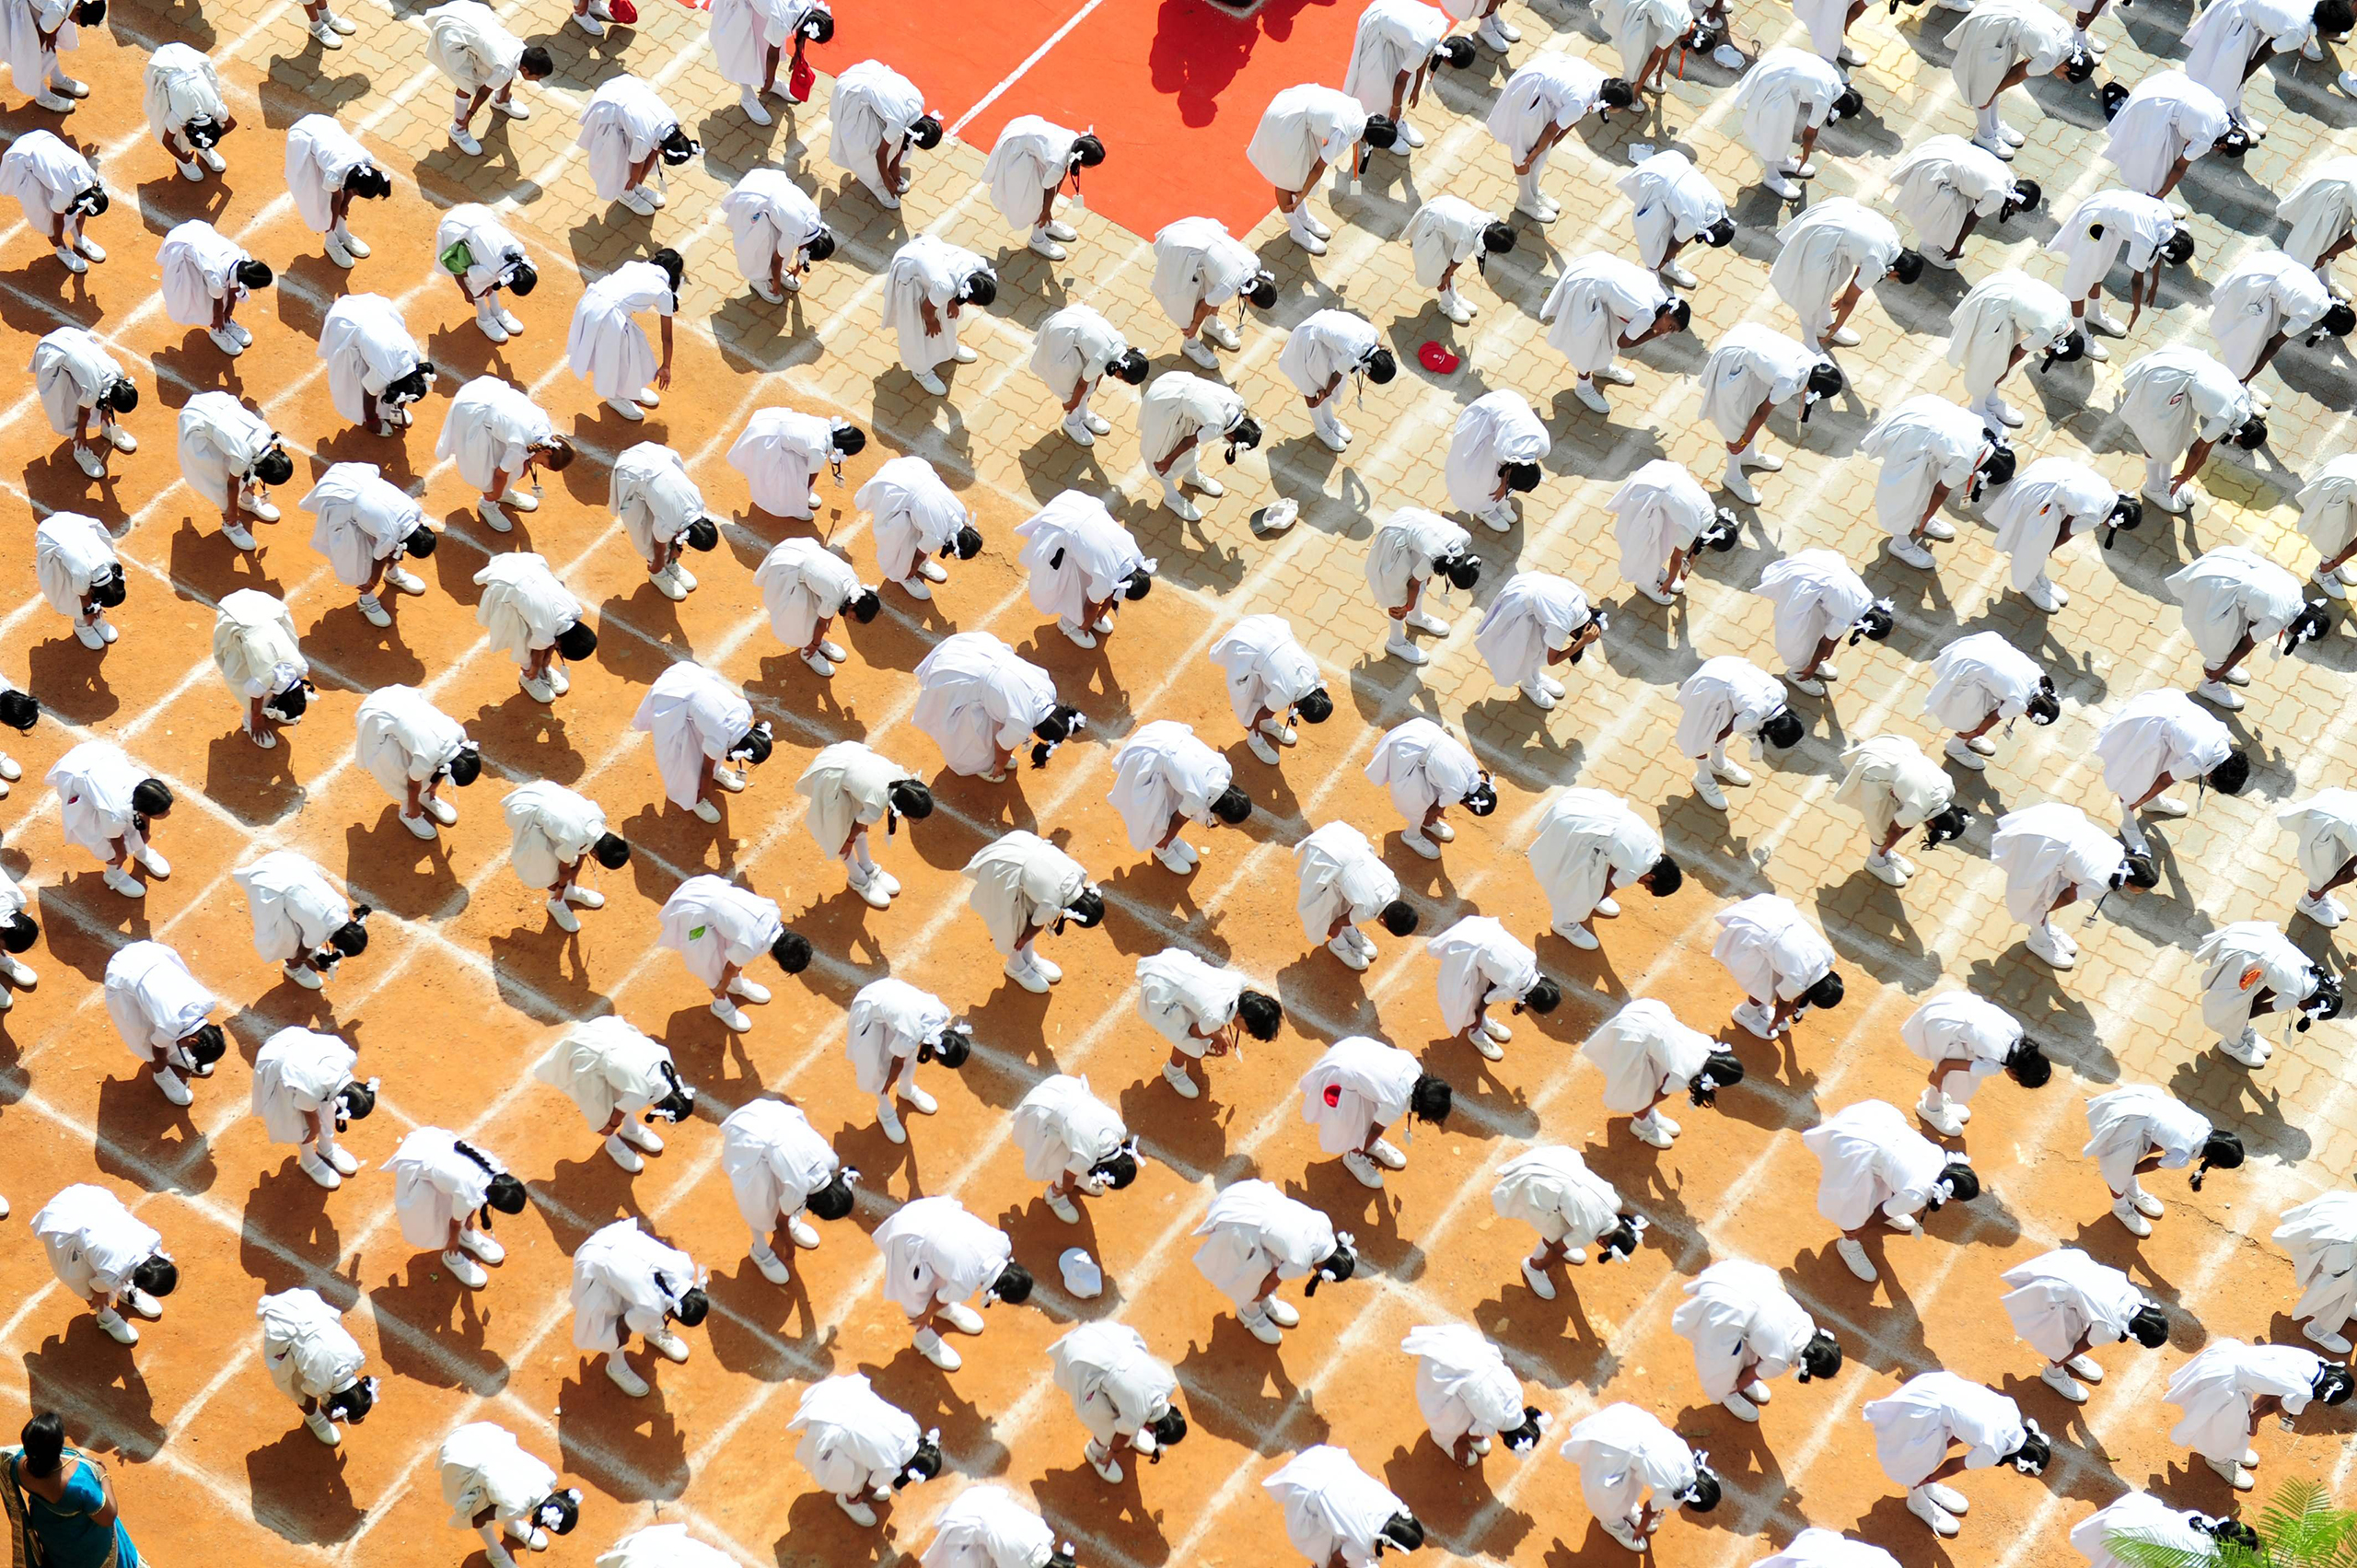 Four thousand and one Indian schoolchildren participate in a yoga session on the eve of International Yoga Day at a school in Chennai, India, on June 20, 2016.